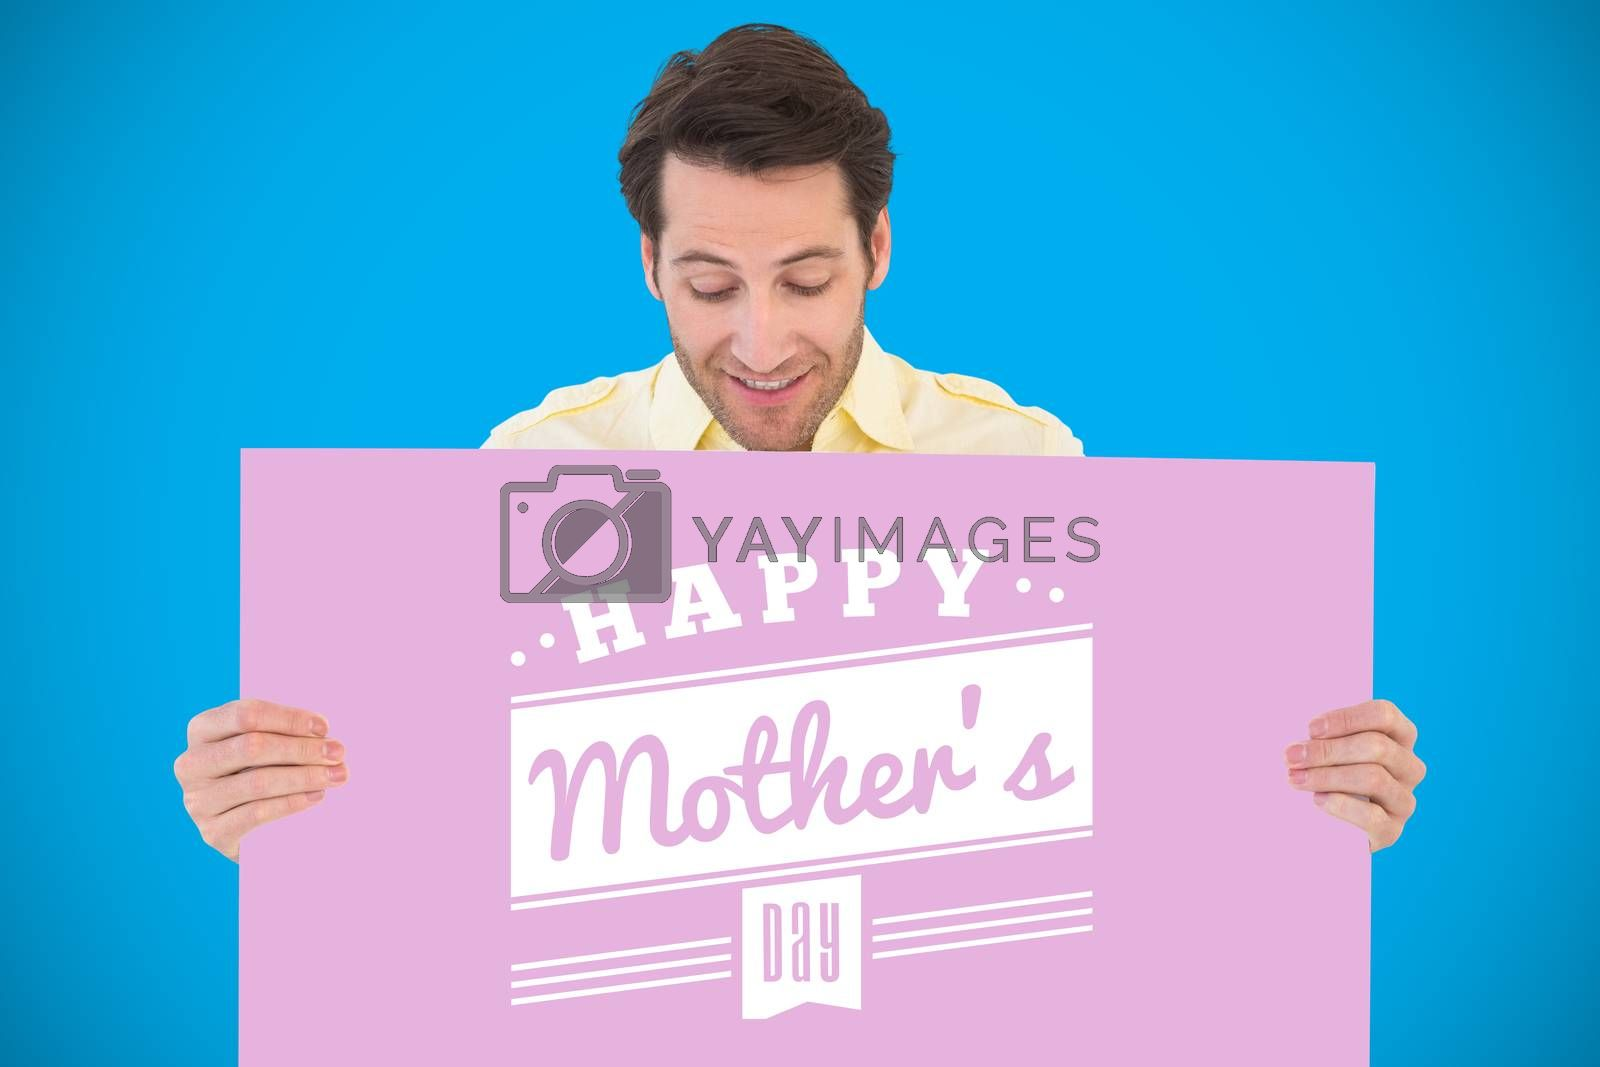 Attractive man smiling and holding poster against blue background with vignette